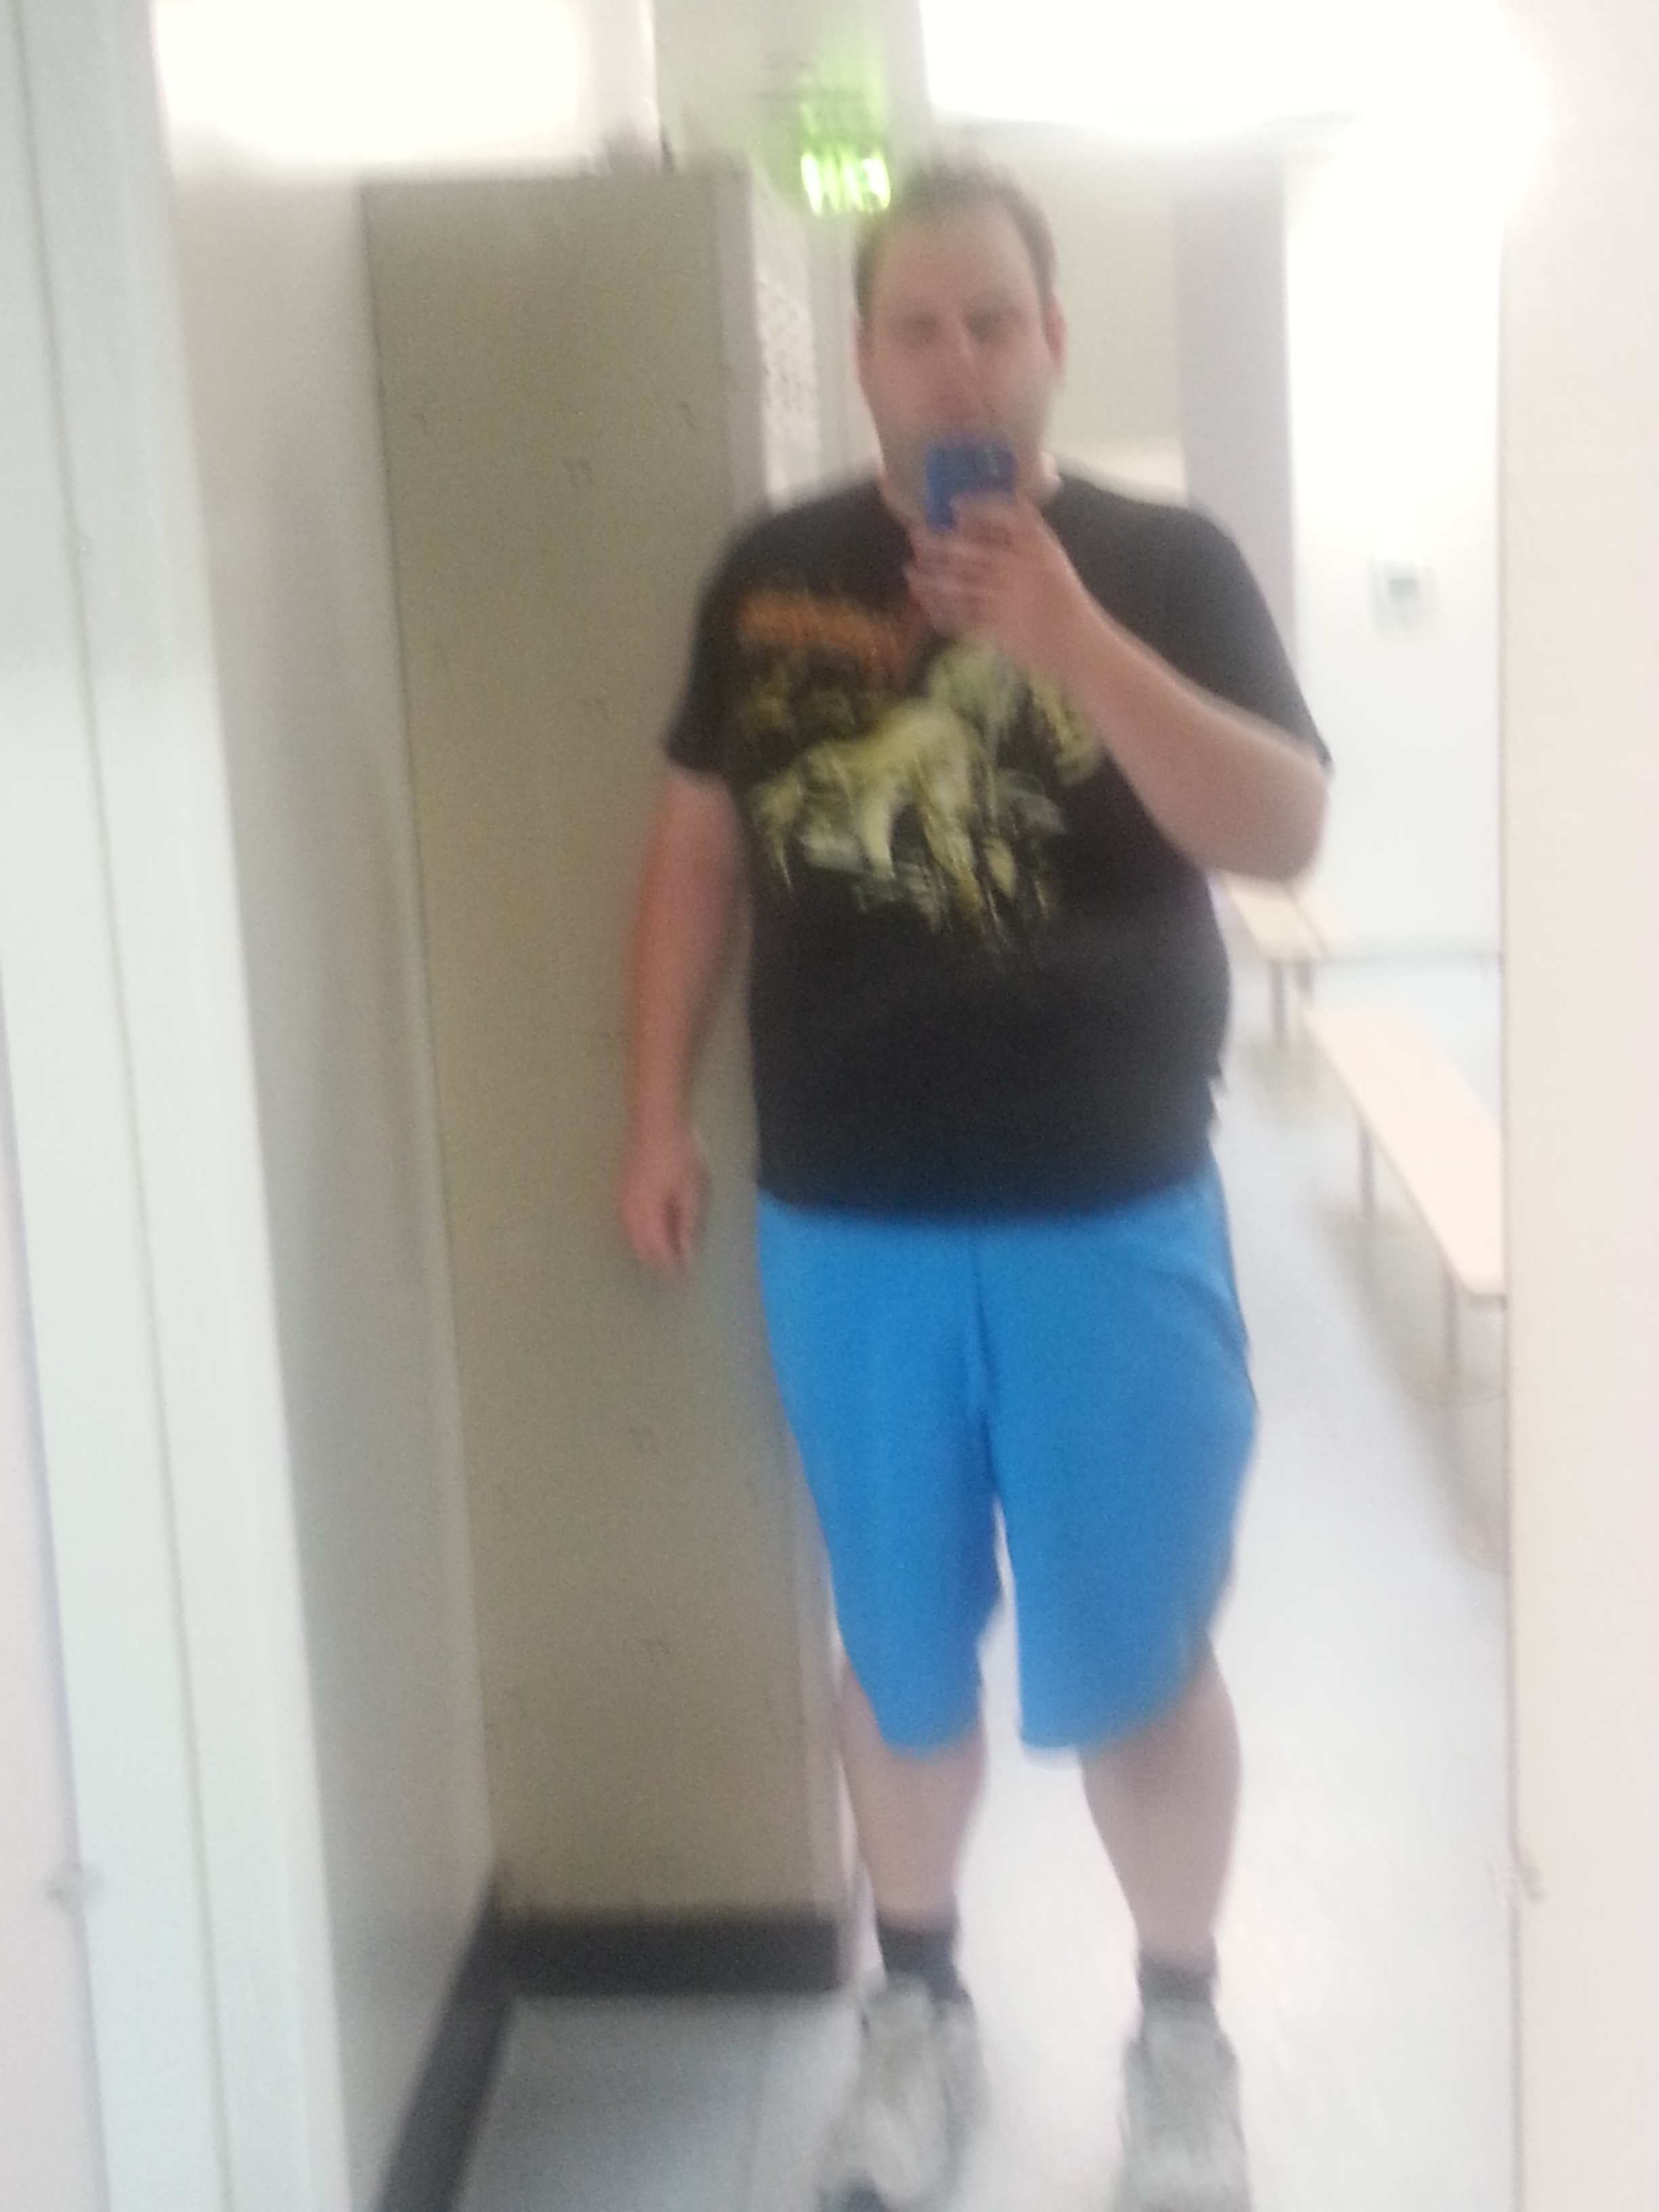 melena  boogaloo edit wrong thread soda cream fitness competition round that learned size inches have current weight waist starting want this much walk here never progress mens total goals lost only shirt would people loss just first thank everyone start been plus husband love feel even 2664 womens which juniors jean know resized entire ring engagement actually half down 515